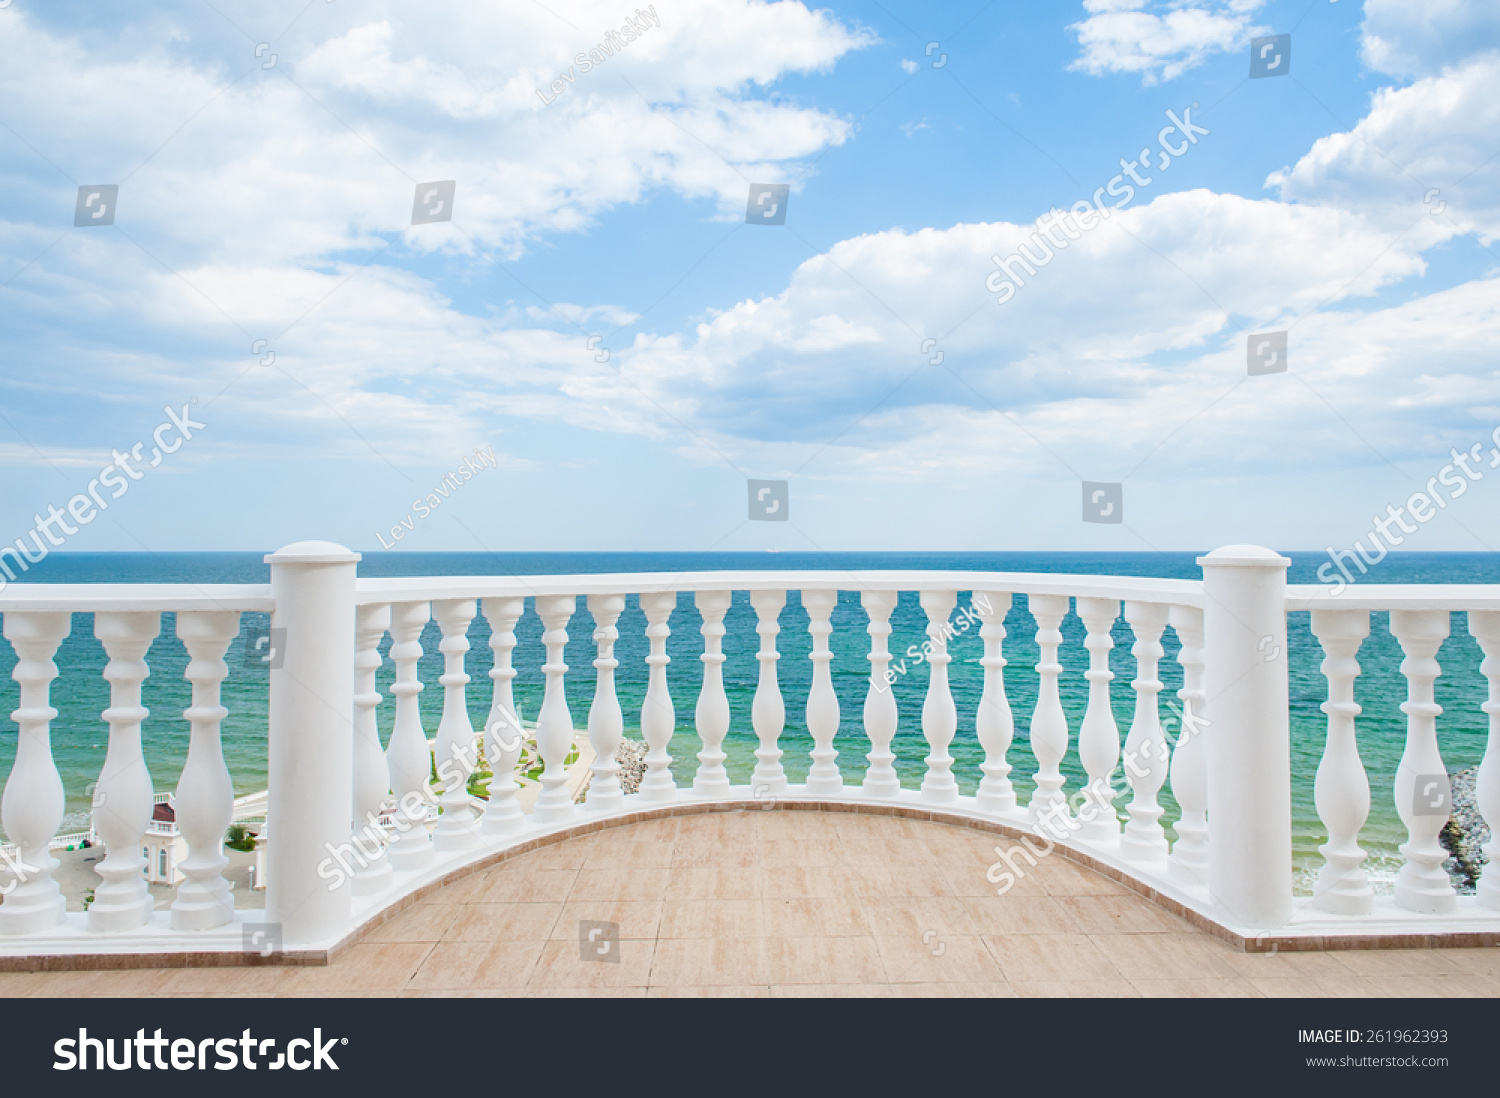 Balcony view on sea shore on stock photo 261962393 for Balcony with view